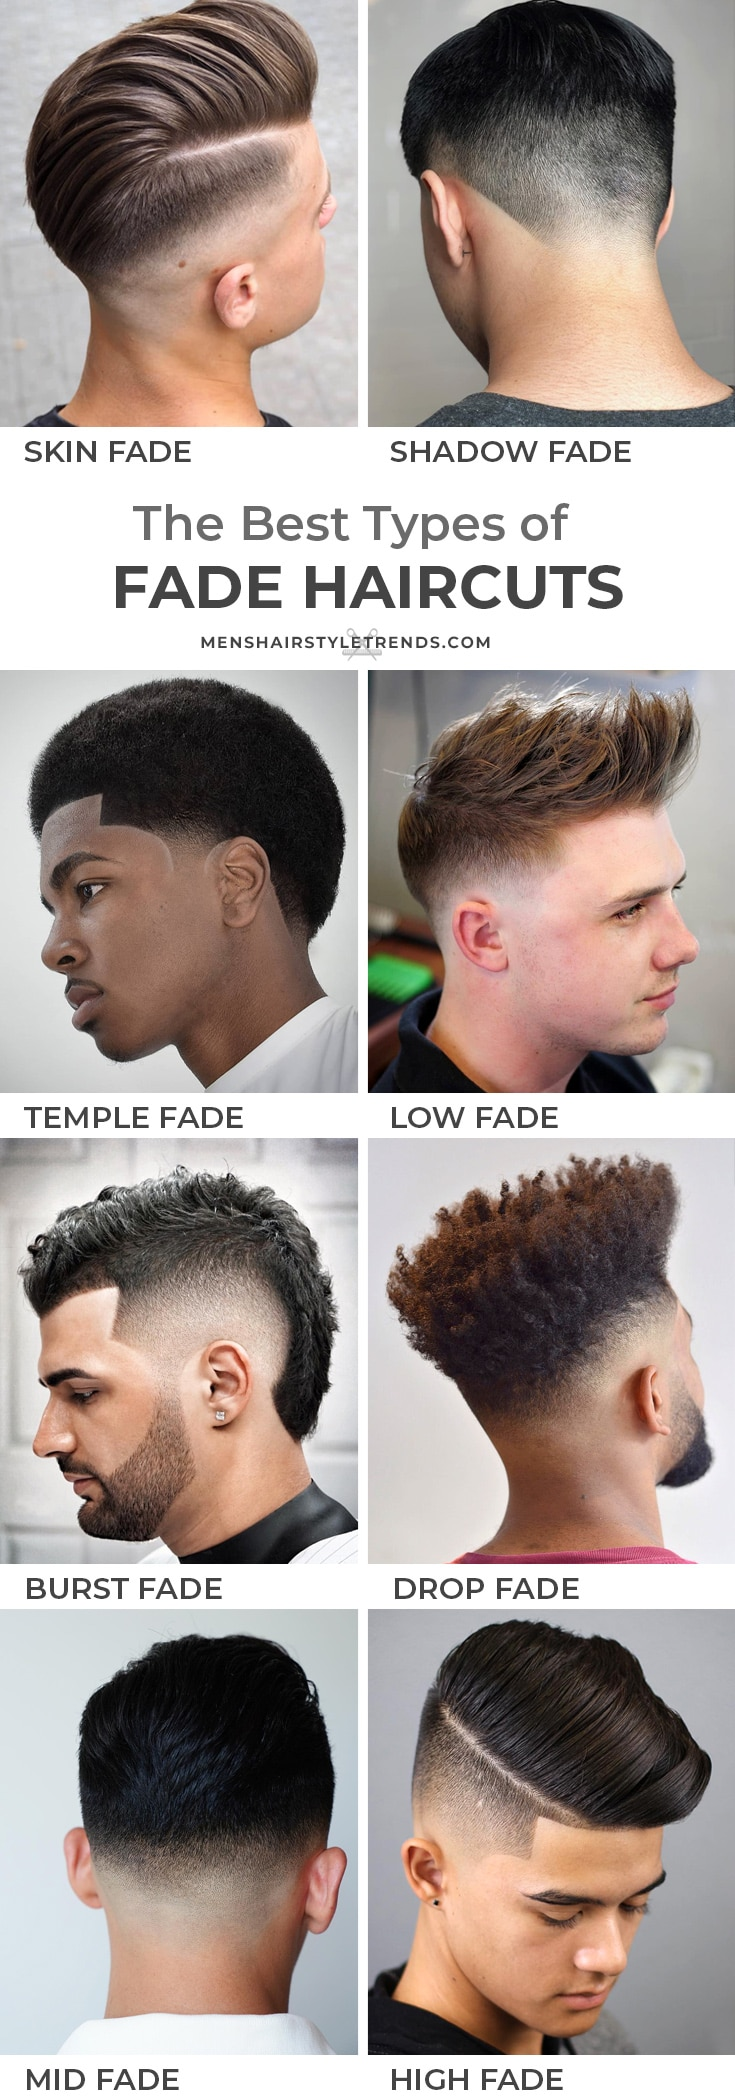 Types Of Fade Haircuts 2020 Update Types Of Fade Haircut Faded Hair Mid Fade Haircut